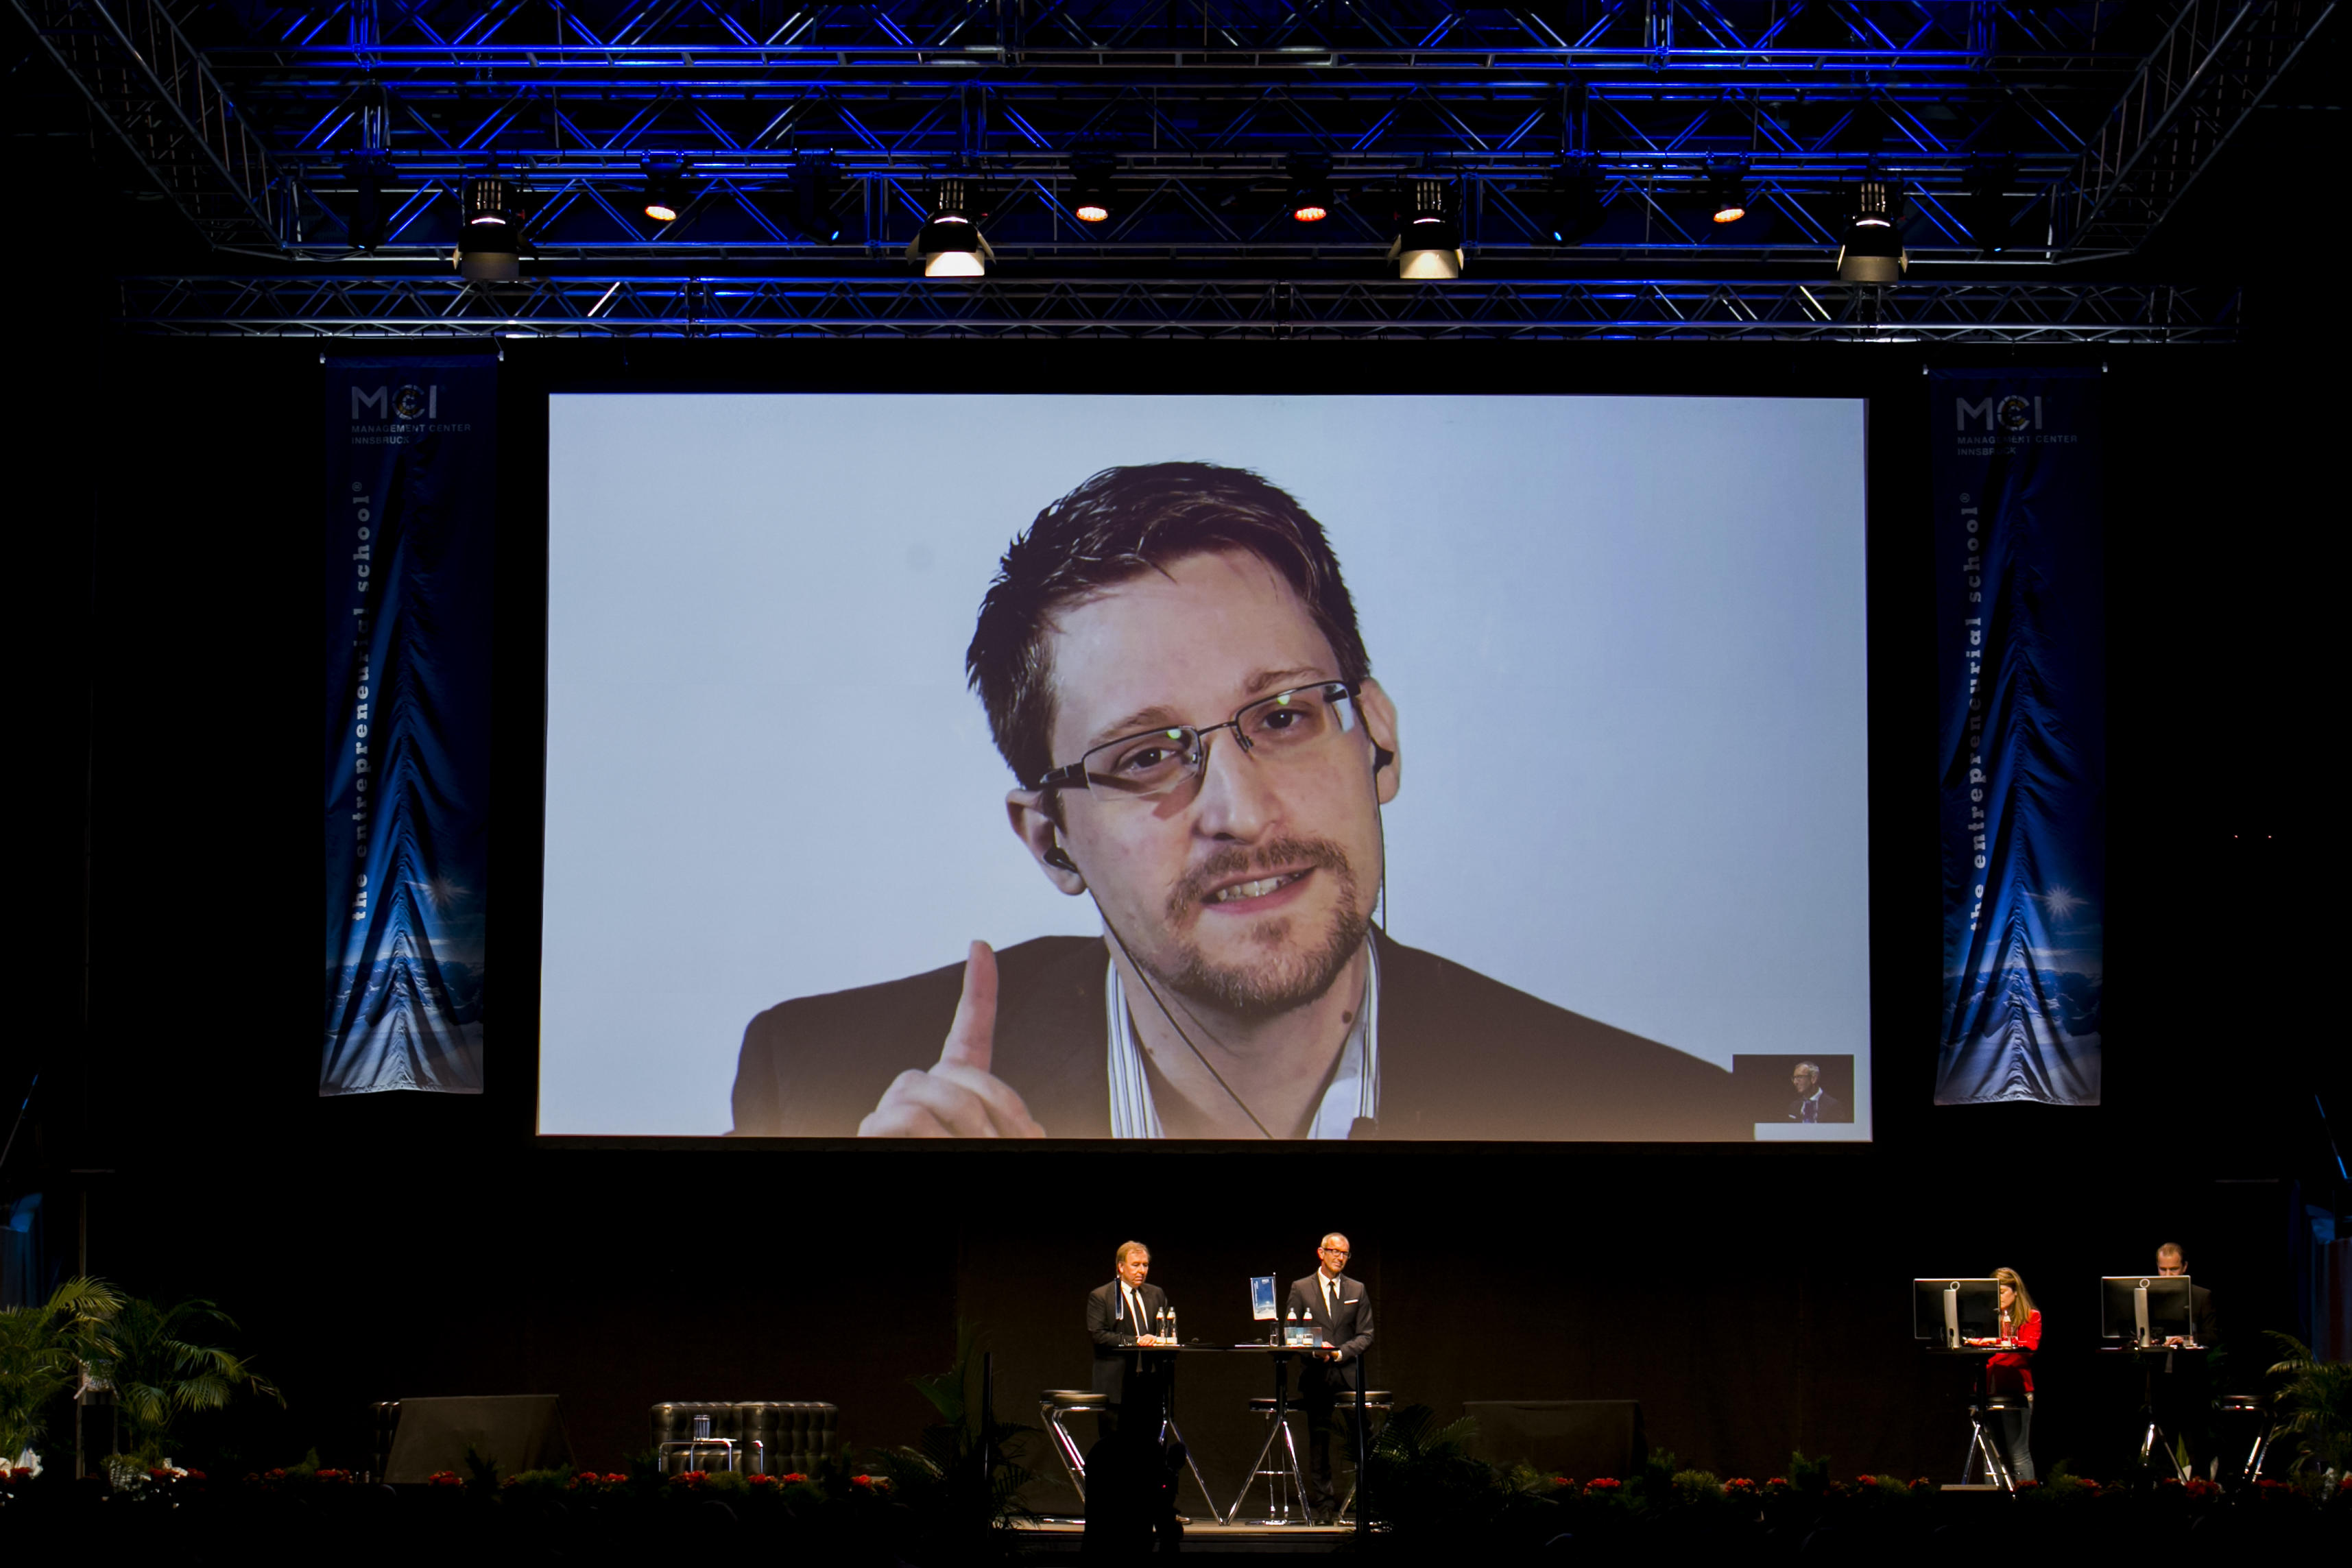 Video of Edward Snowden shown on a large screen above a stage.